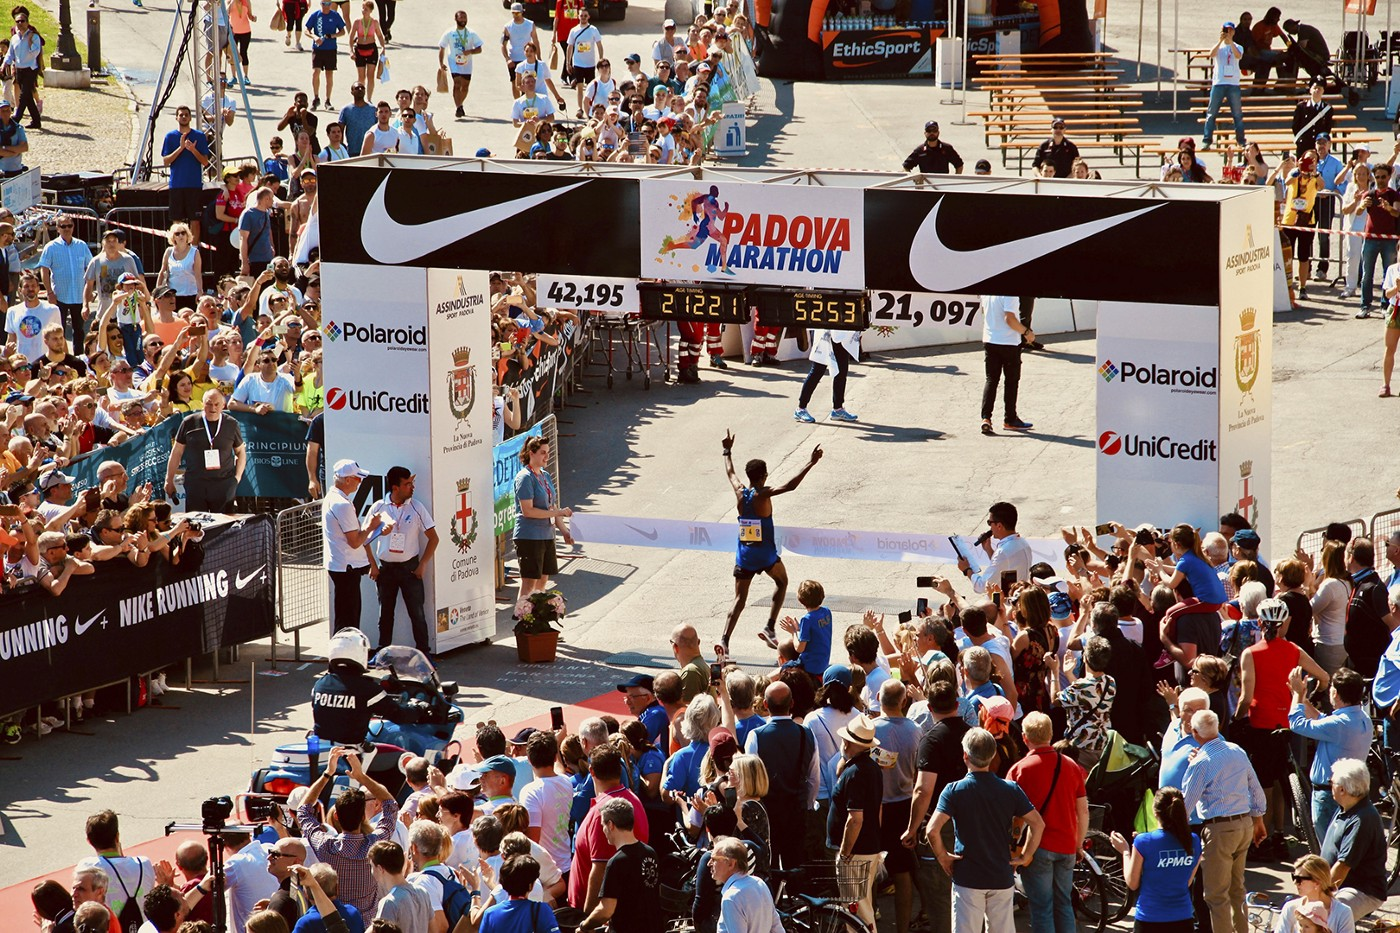 Photo of a runner winning the Padova, Italy marathon (analogy to companies winning in a recession)